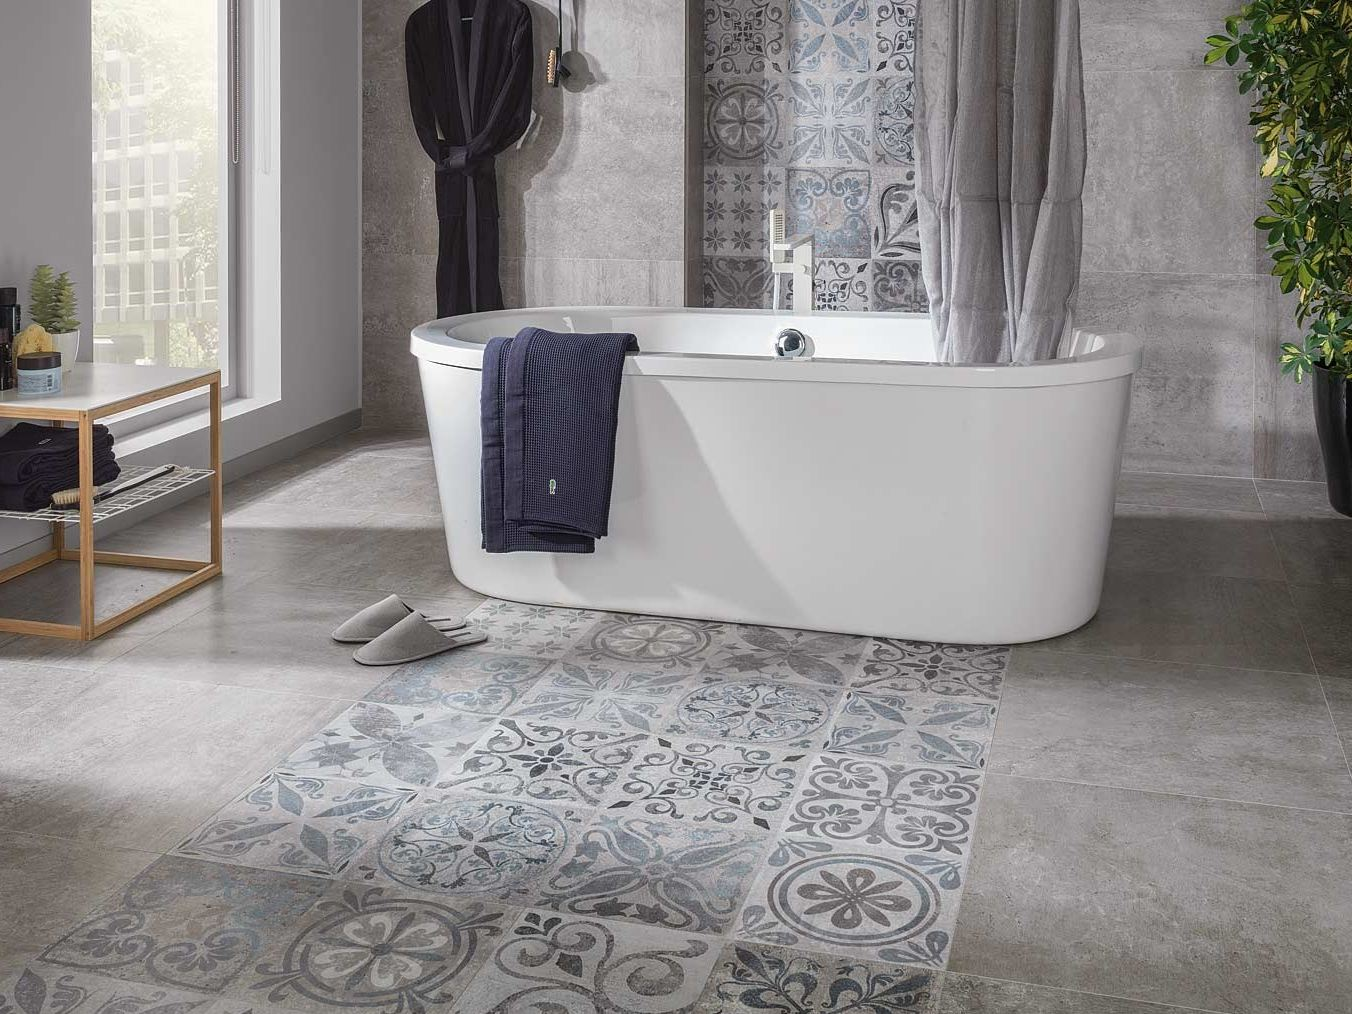 Rev tement de sol mur ston ker antique by porcelanosa - Suelos hidraulicos porcelanosa ...